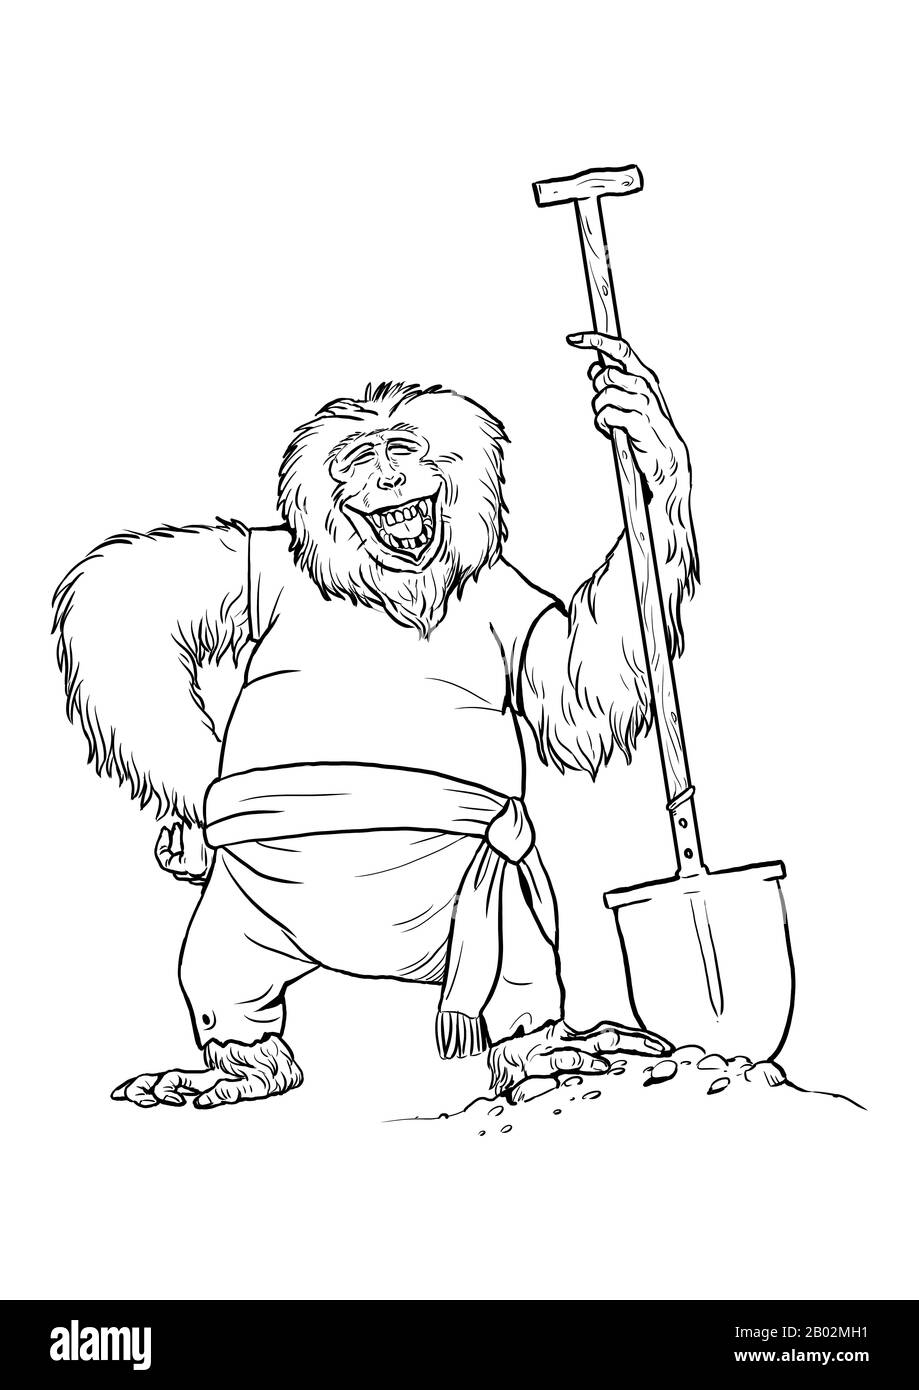 Shovel Coloring Page - Ultra Coloring Pages   1390x919